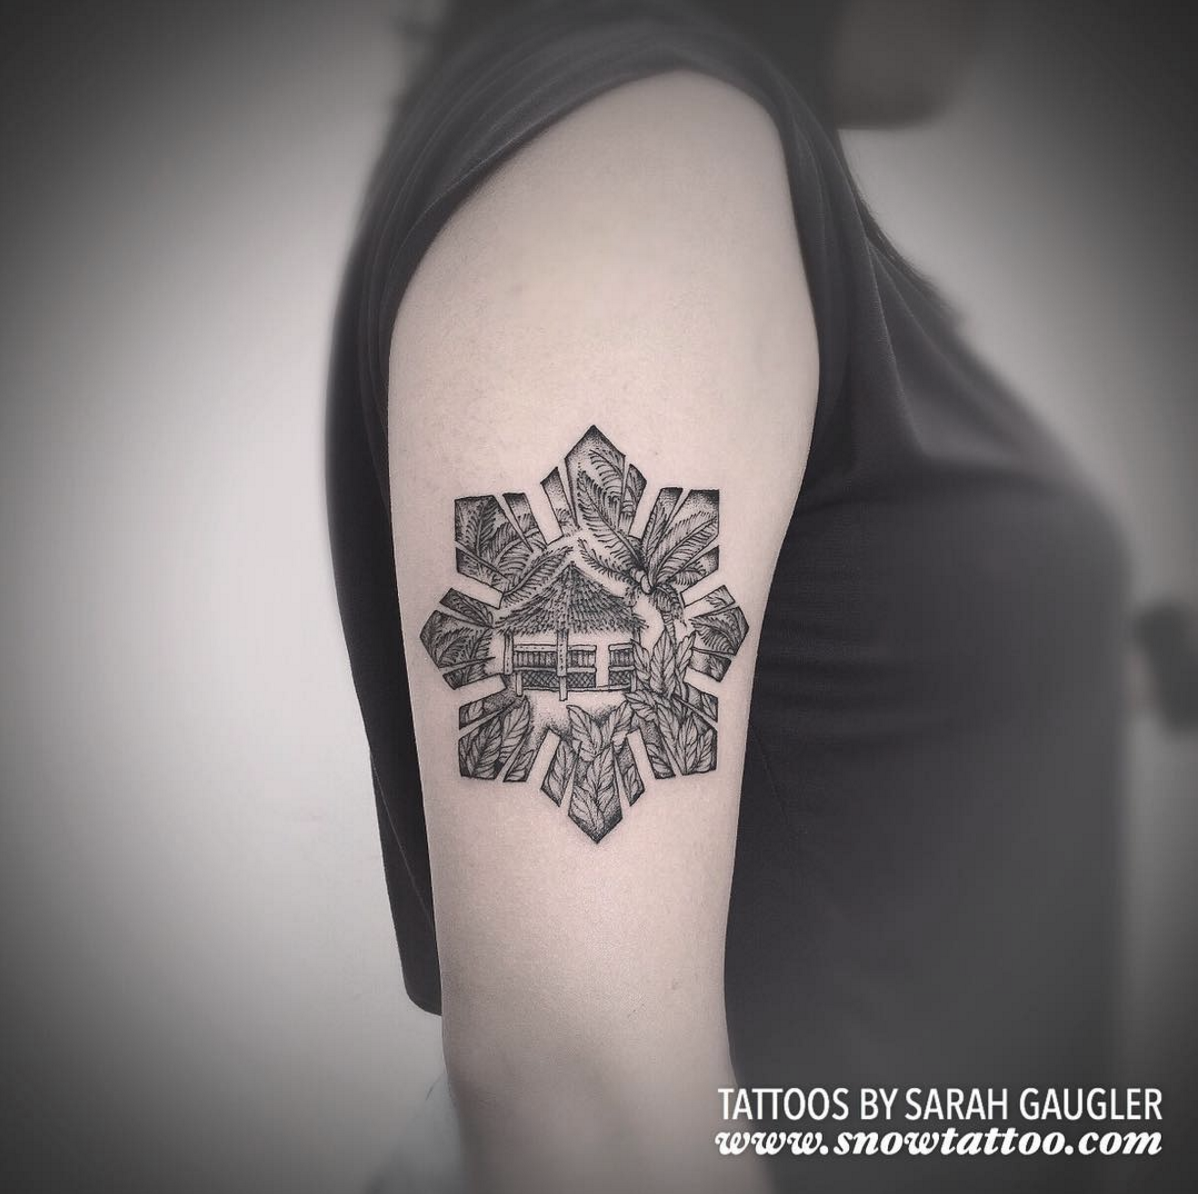 Sarah Gaugler Snow Tattoo Custom Filipino Philippine Nipa Hut Bahay Kubo Original Design Fine Line Finelinetattoo New York Best Tattoos Best Tattoo Artist NYC.png